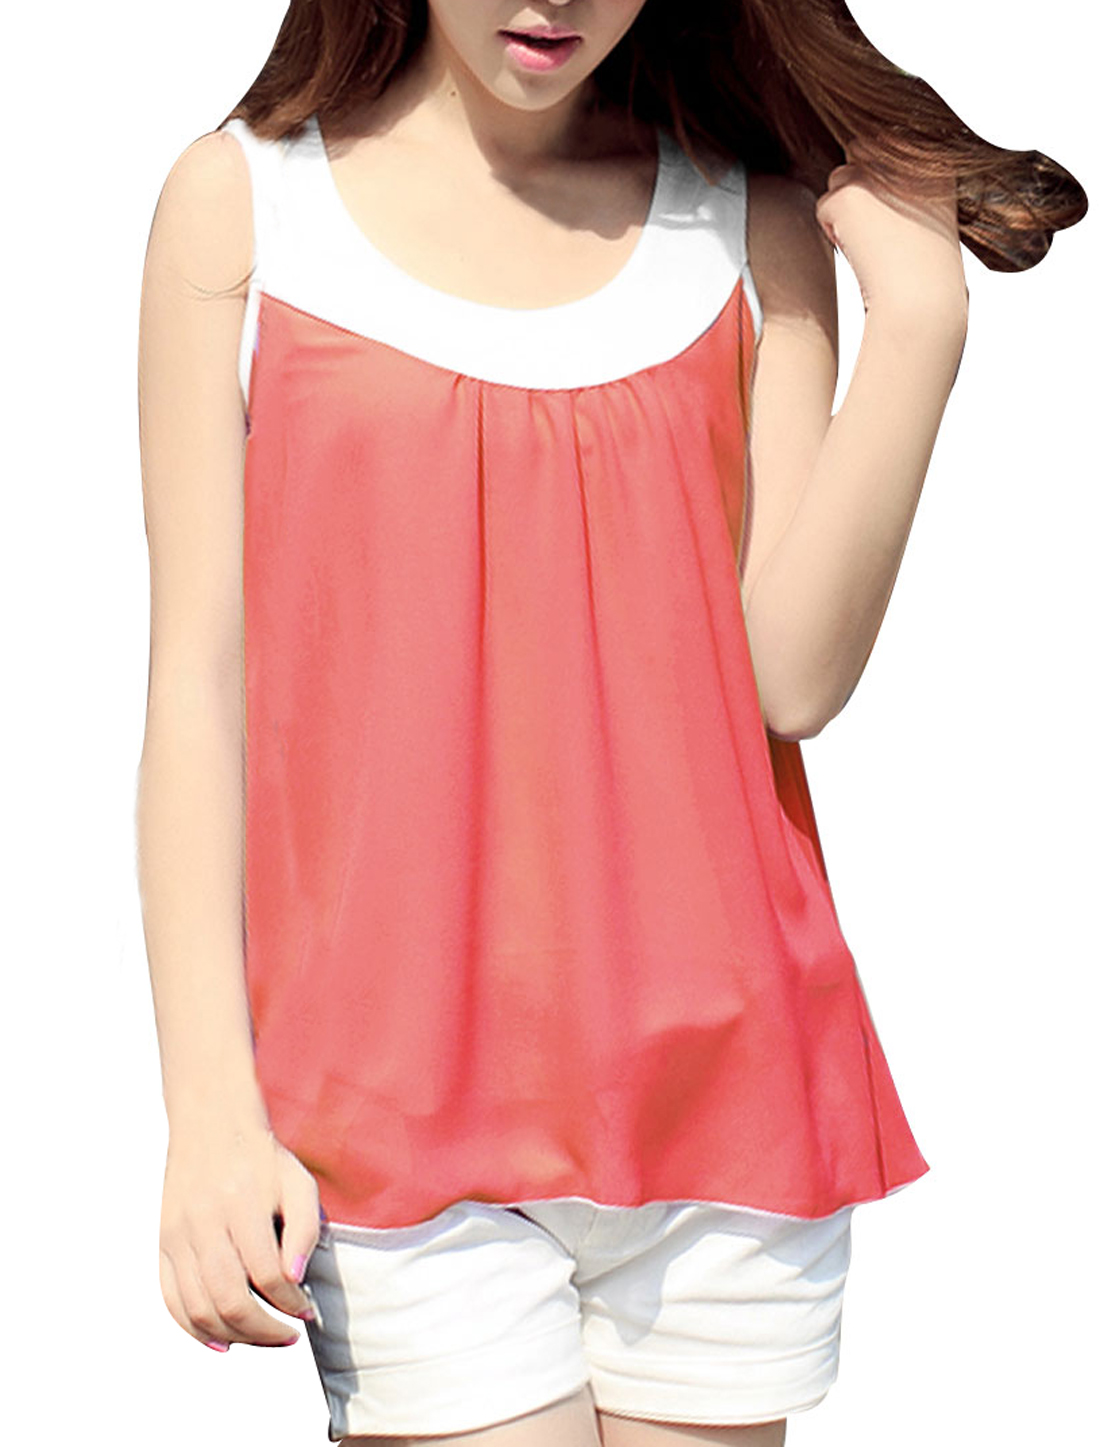 Stylish Coral Pink Semi-Sheer Chiffon lined Tank Tops for Lady S